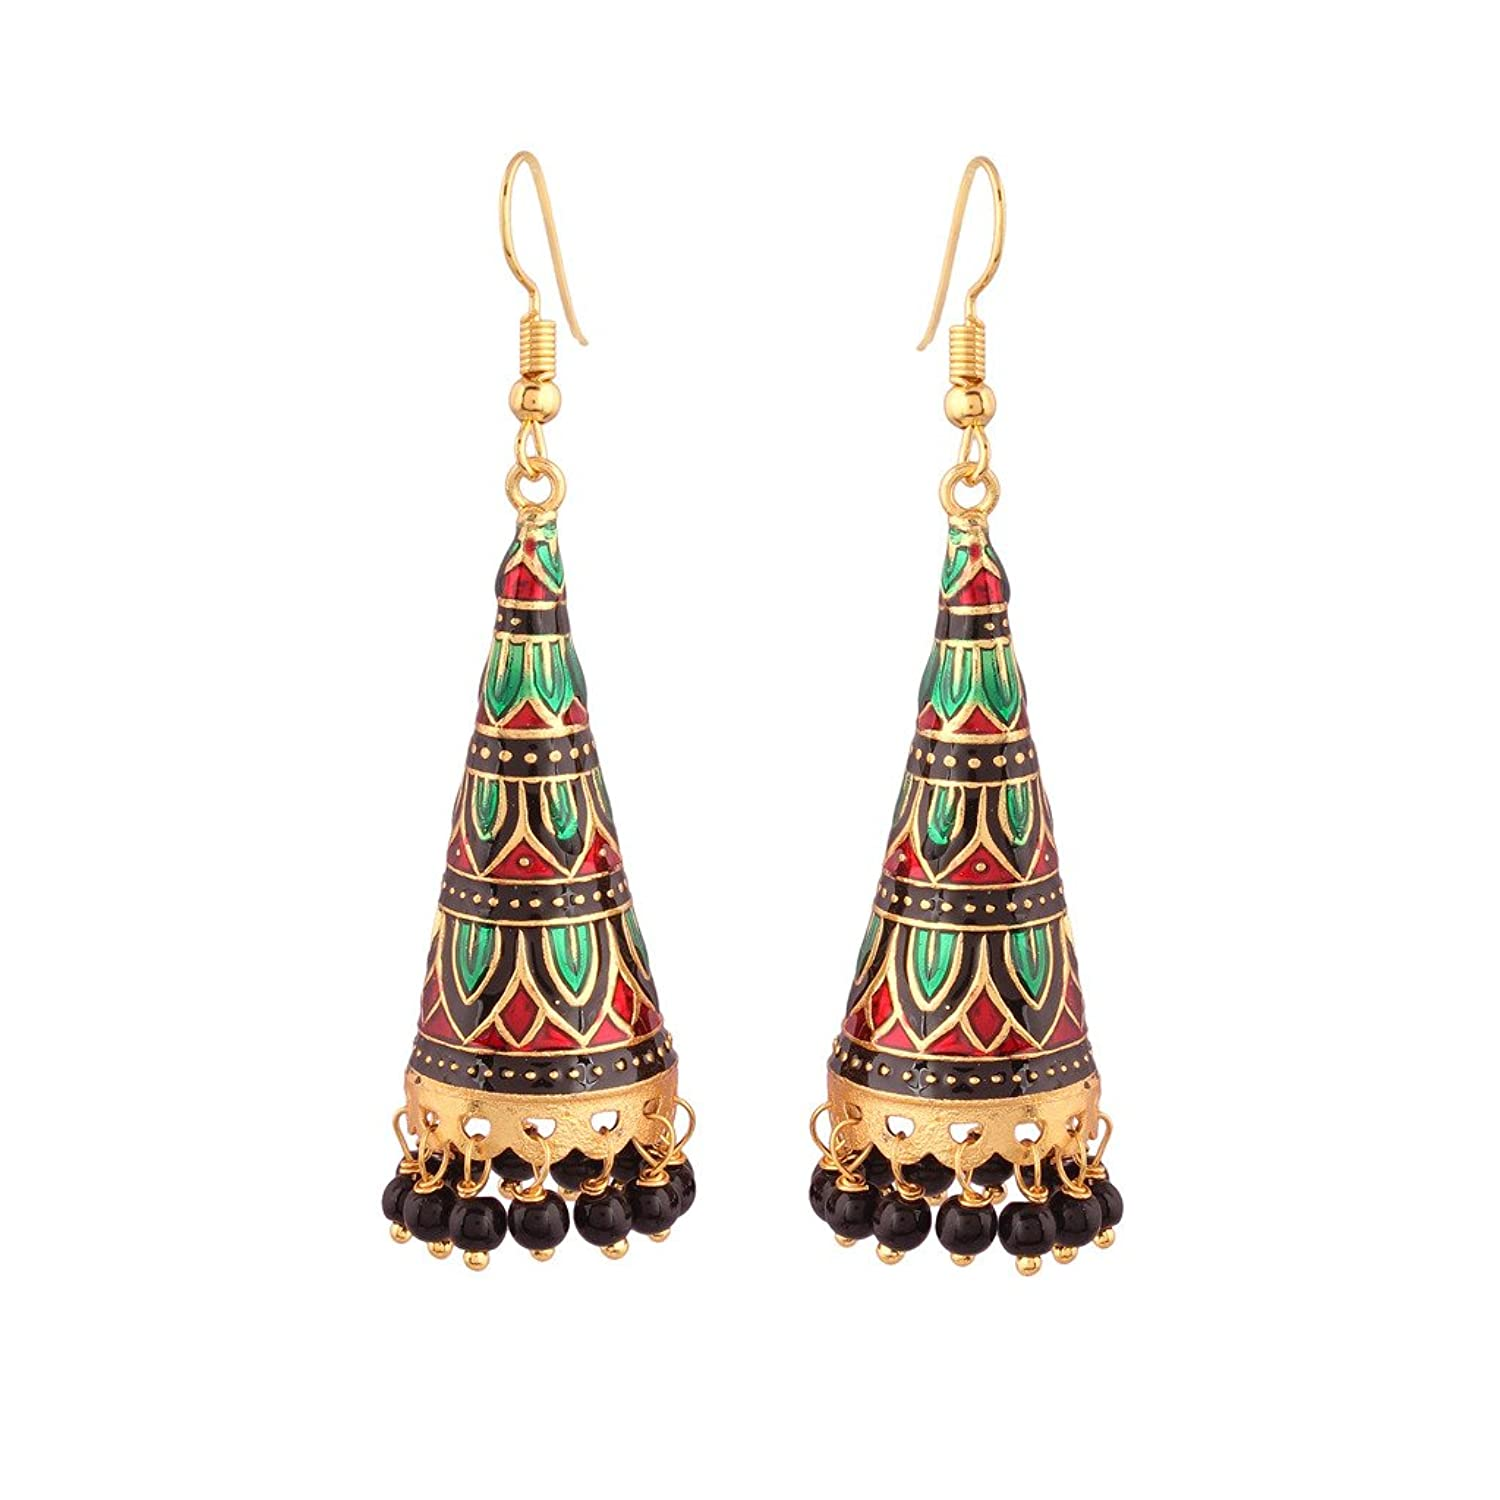 rajasthani meeranakari droplets traditional earrings work big long danglers jaipuri in meenakari productdetails